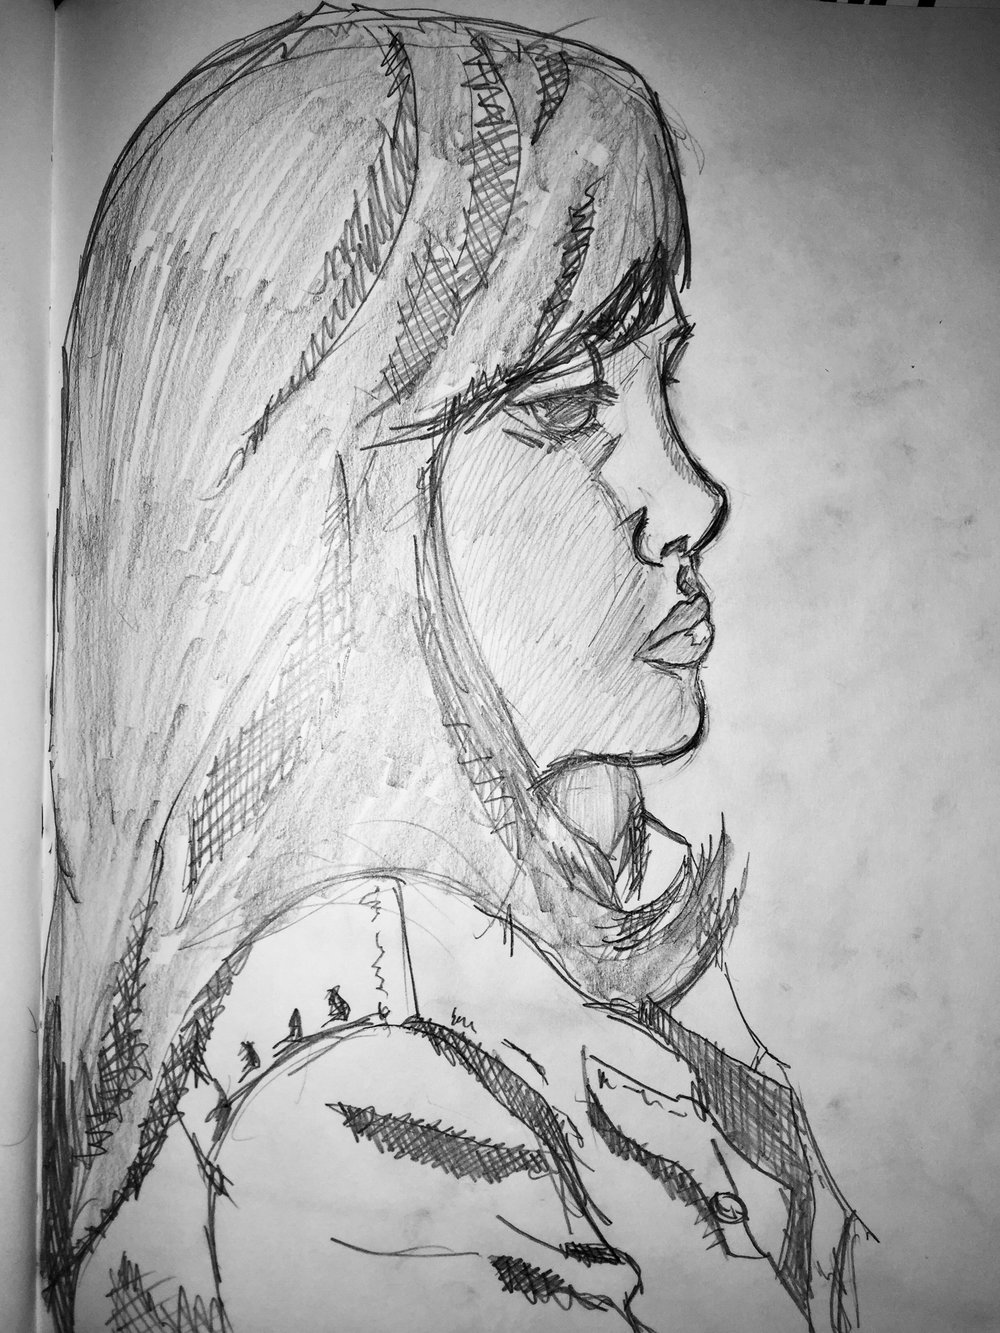 And here's one from a new drawing group I found in Lansing that meets at a quaint, new coffee shop called Blue Owl.